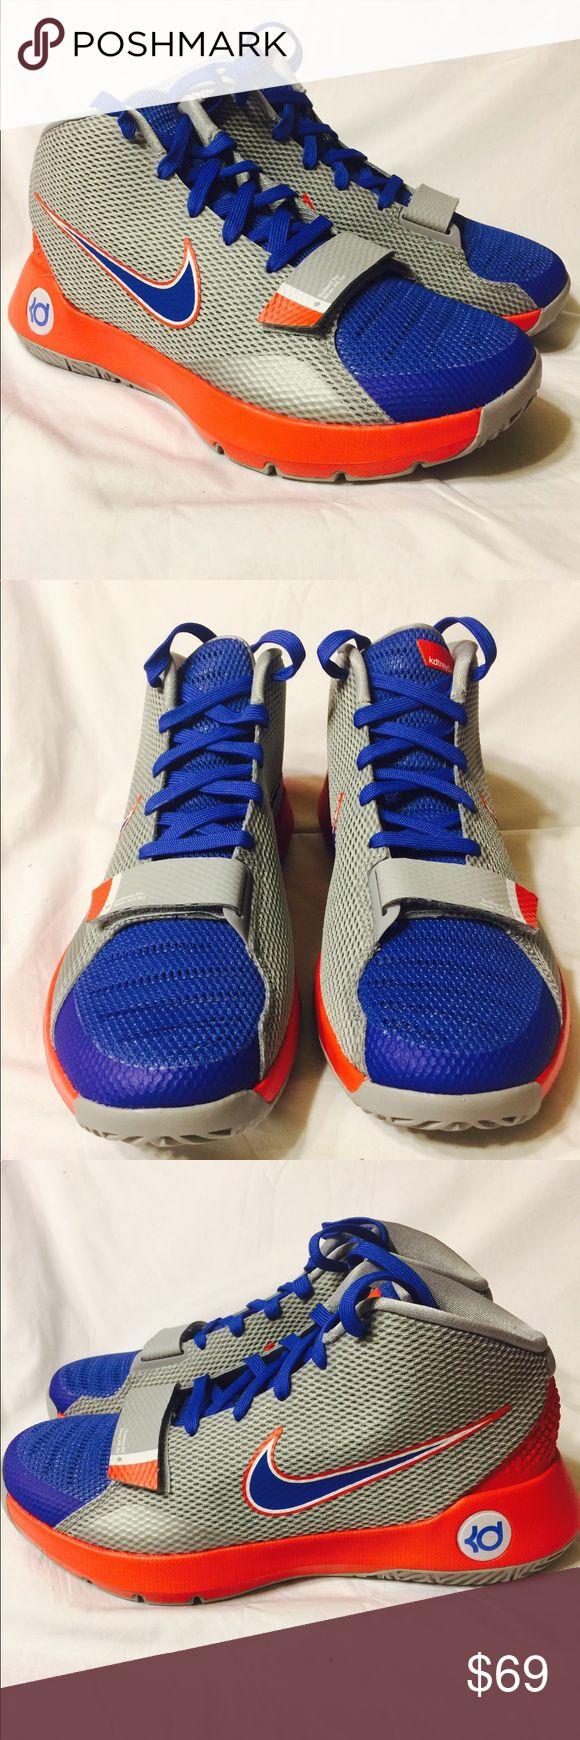 Nike KD Trey 5 III basketball shoes gray red blue New without box- Nike KD Trey 5 III gray, red, blue high top basketball shoes.  Lace and hook and loop fastener.  Sizes 8.5, 9, and 9.5. Nike Shoes Athletic Shoes